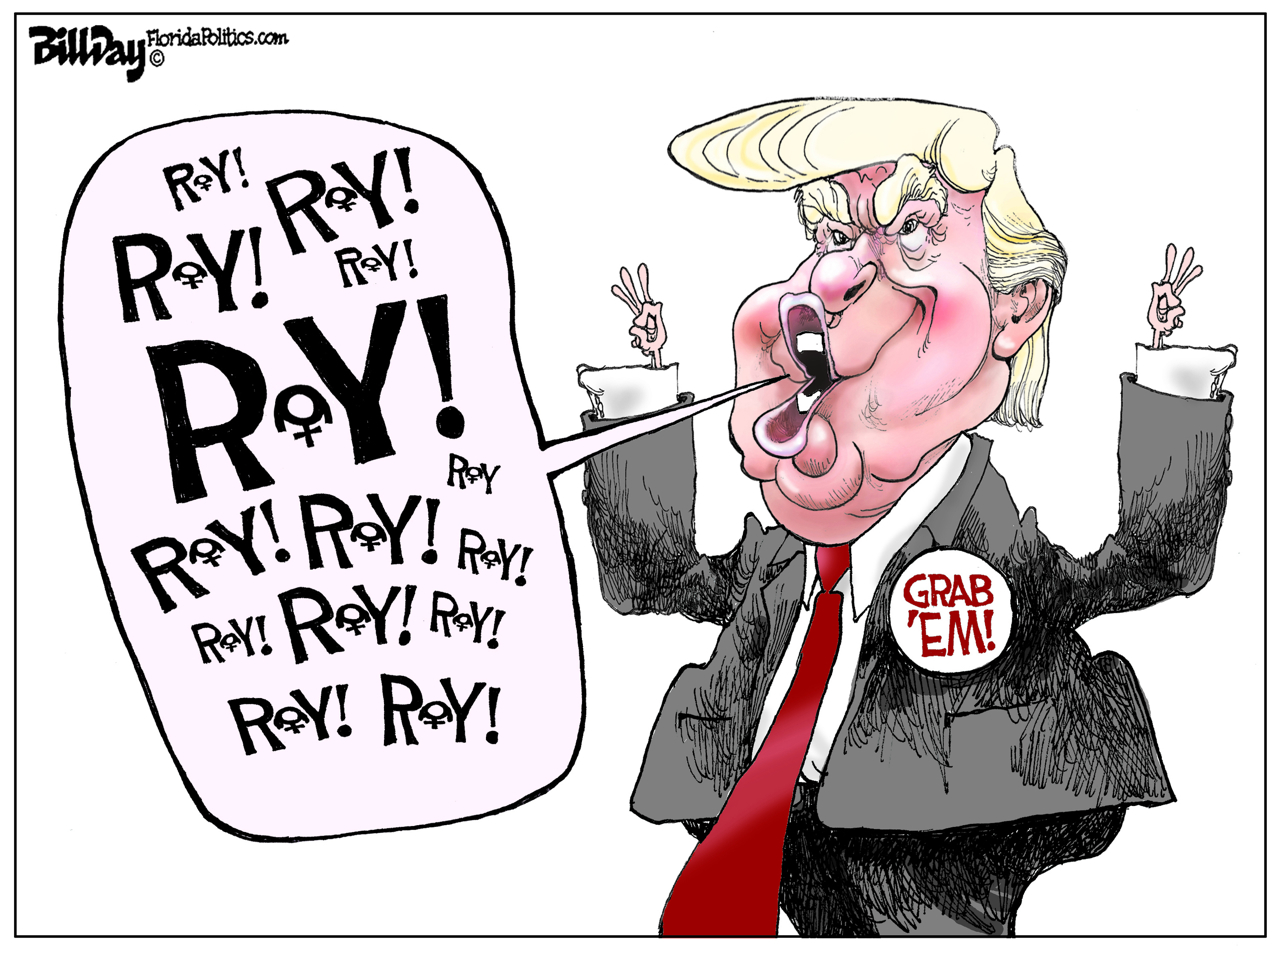 Bill Day / Cagle Cartoons